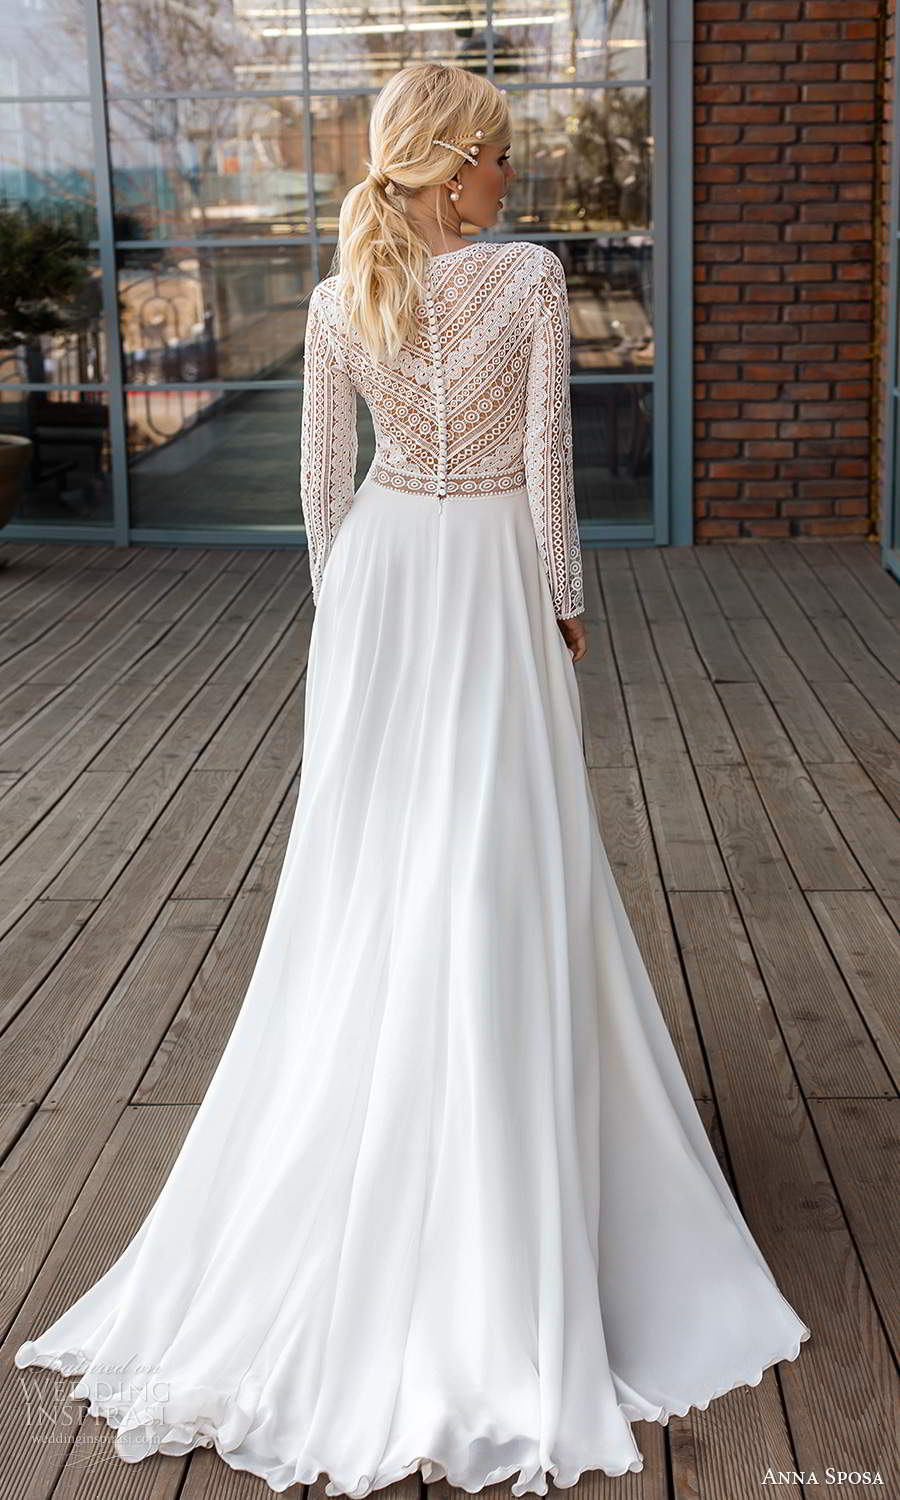 anna sposa 2021 boho bridal long sleeves plunging v neckline embellished lace bodice clean skirt a line ball gown wedding dress chapel train (10) bv